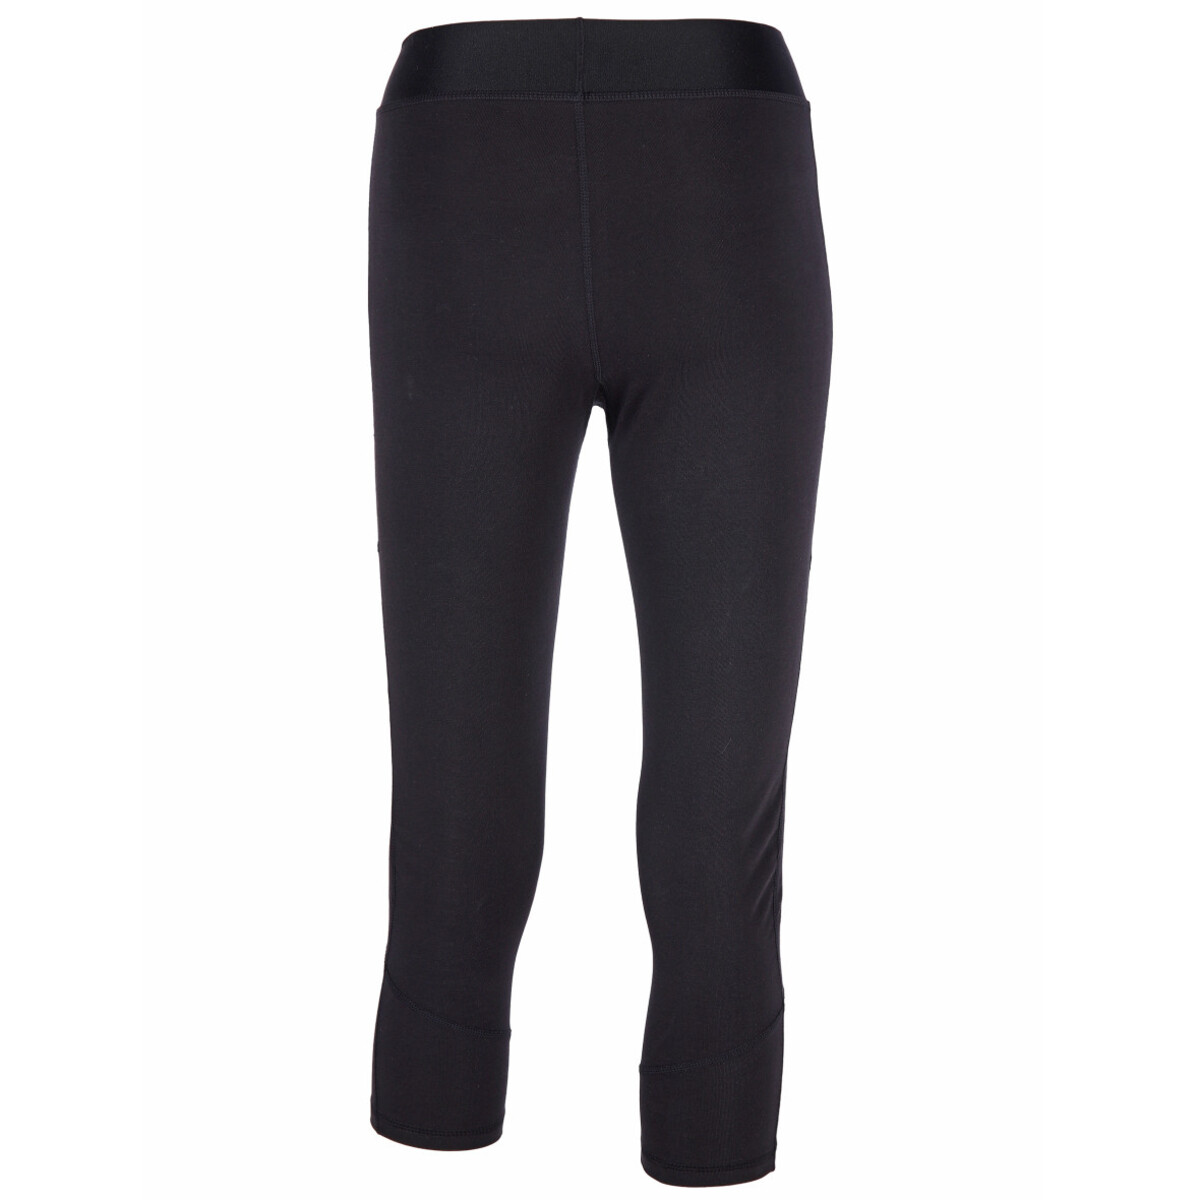 Bild 2 von Damen Sportleggings